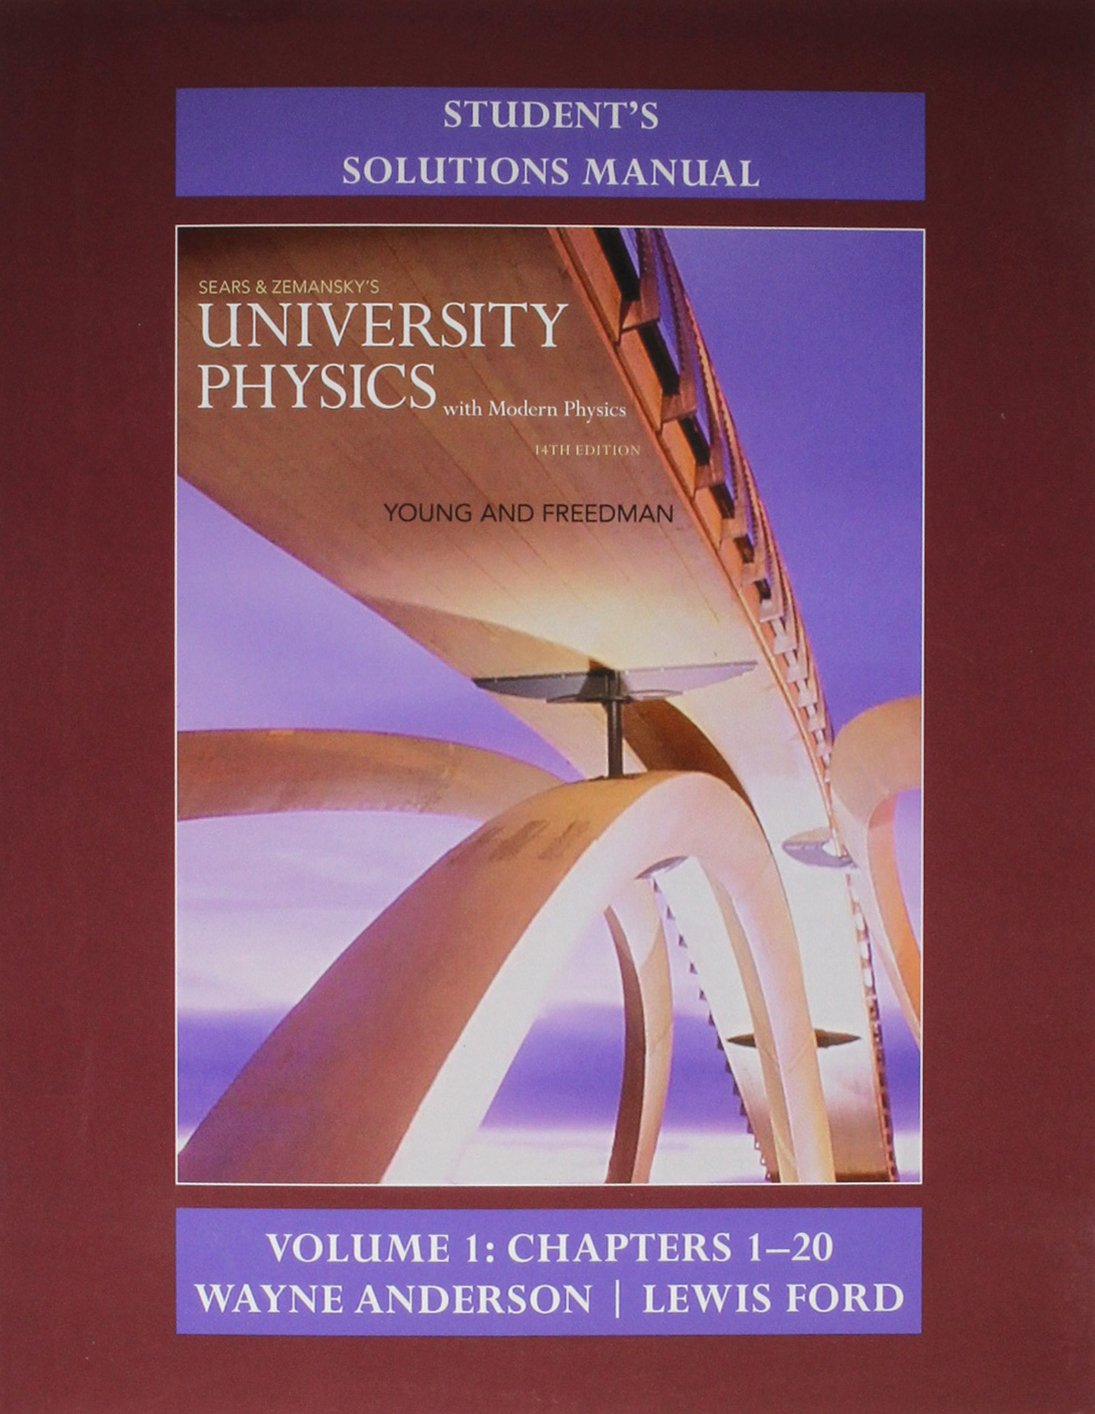 Physics Book Solution Manual